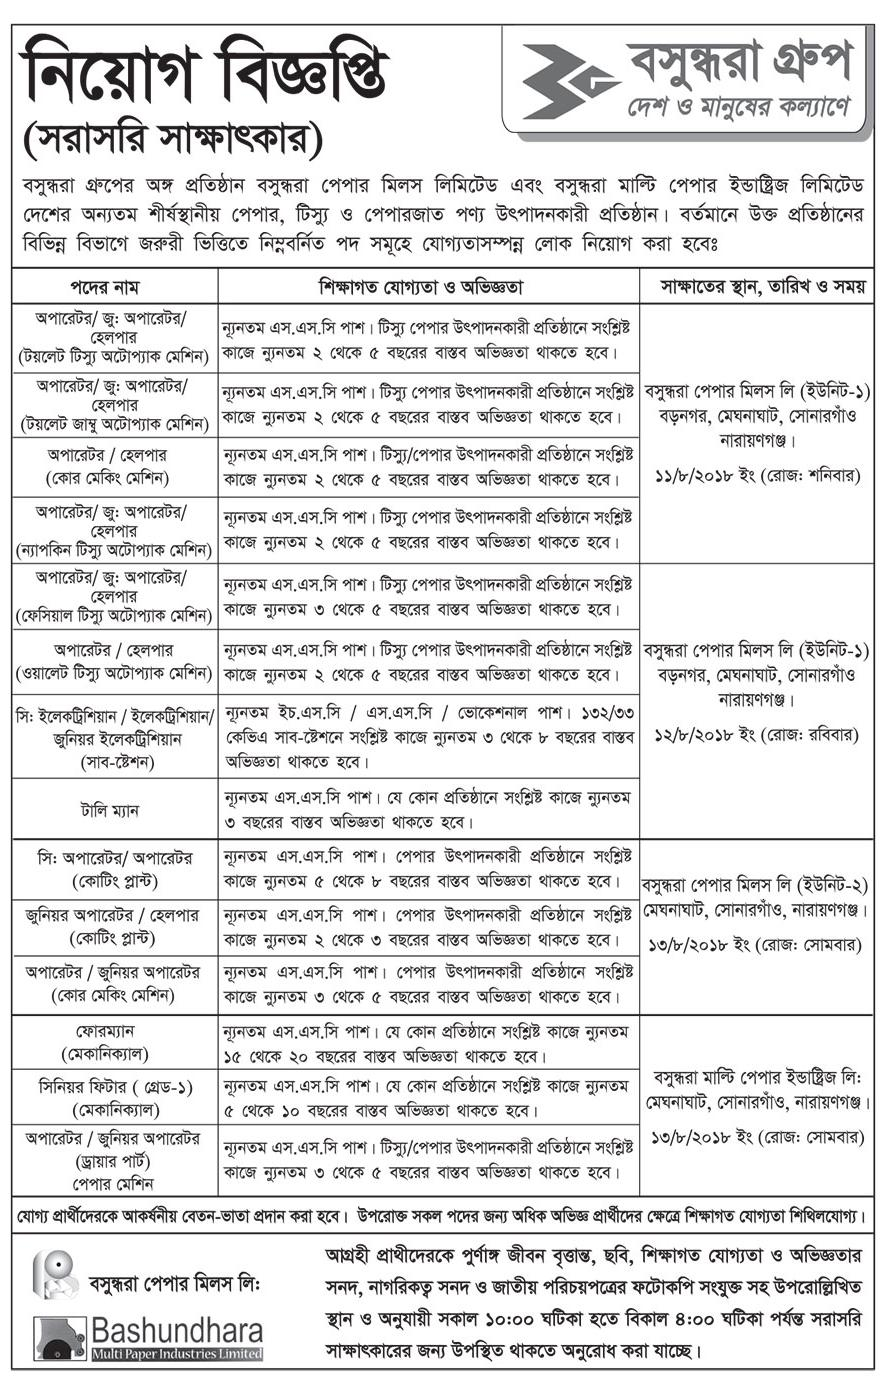 Bashundhara Paper Mils Limited Apply Instruction, Application Fee, Salary, Age and Other Information